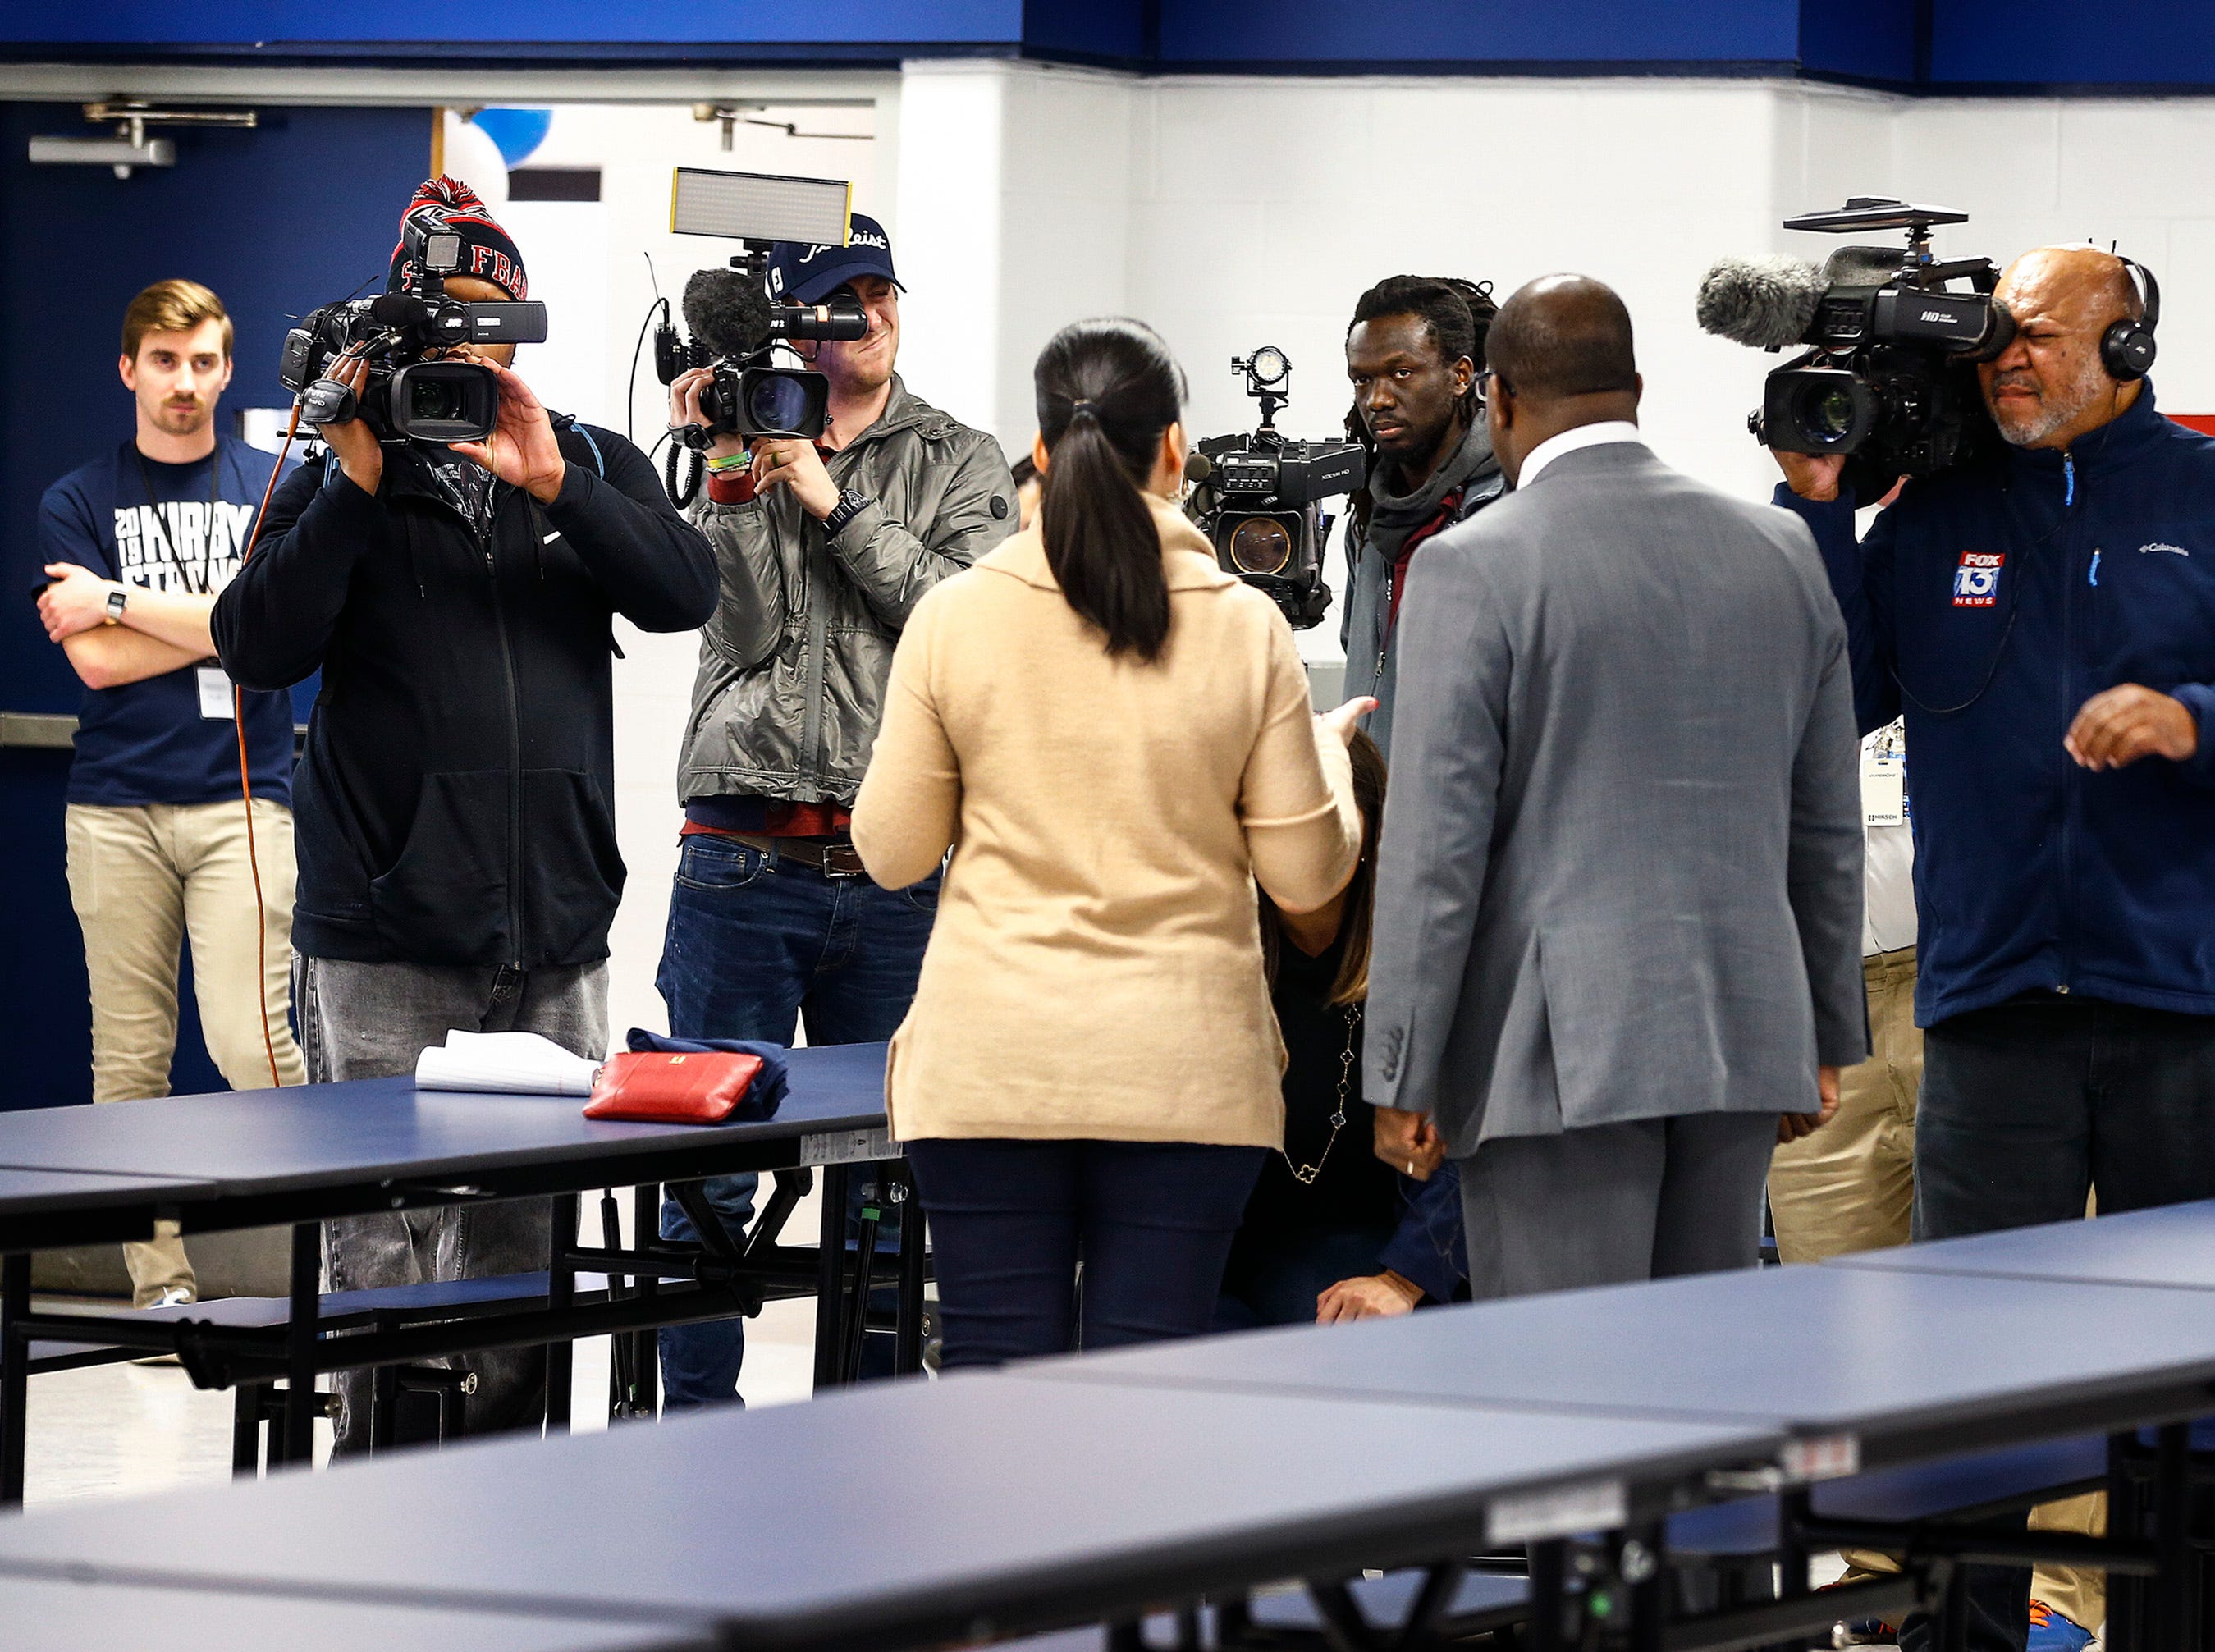 Kirby High School Principal Sheevon Hunter and Shelby County School's Chief Communications Officer Natalia Powers lead a media tour of the updated school that will reopen on Monday following months of rat abatement.